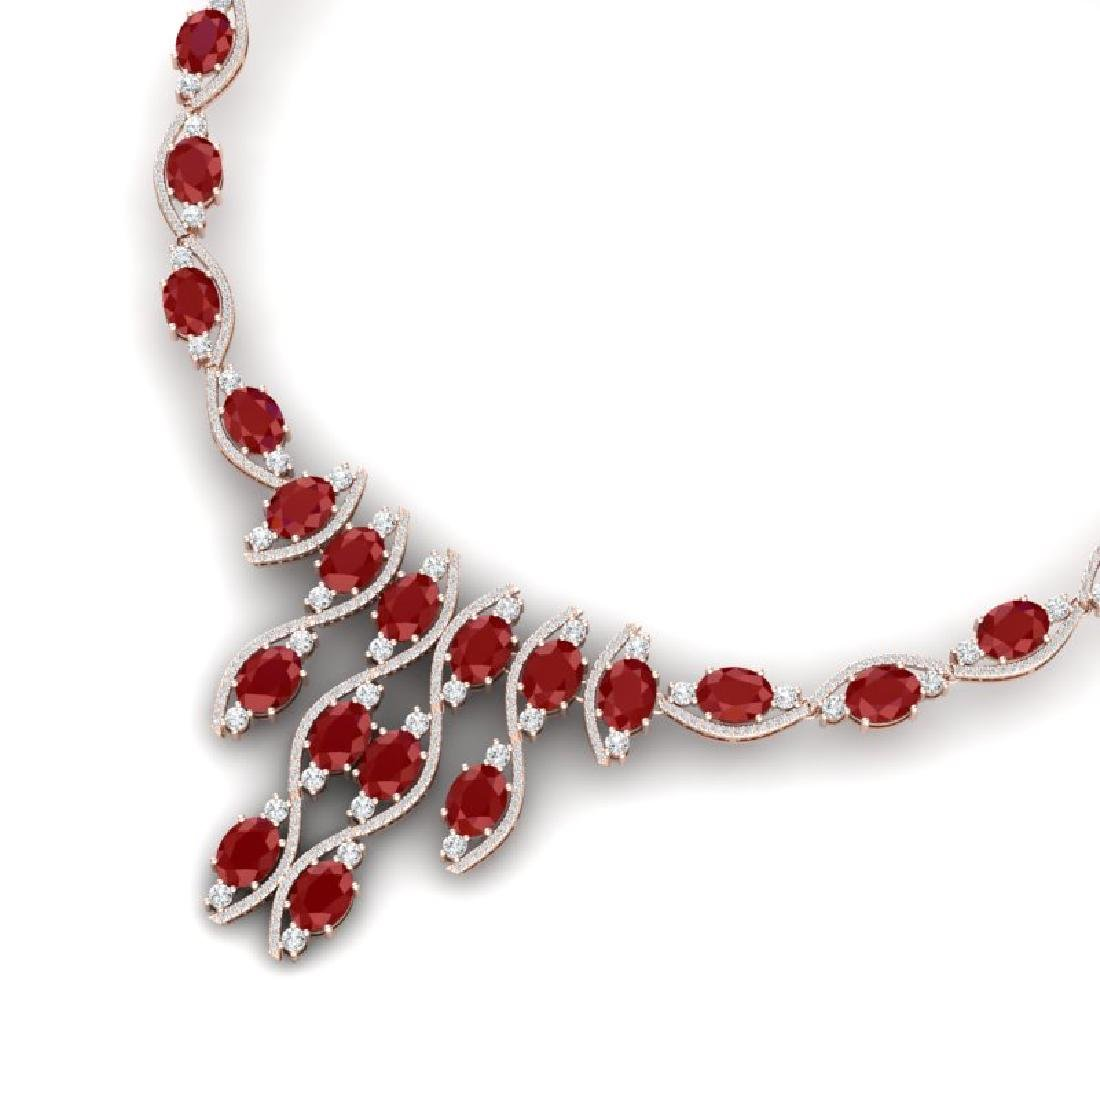 65.93 CTW Royalty Ruby & VS Diamond Necklace 18K Rose